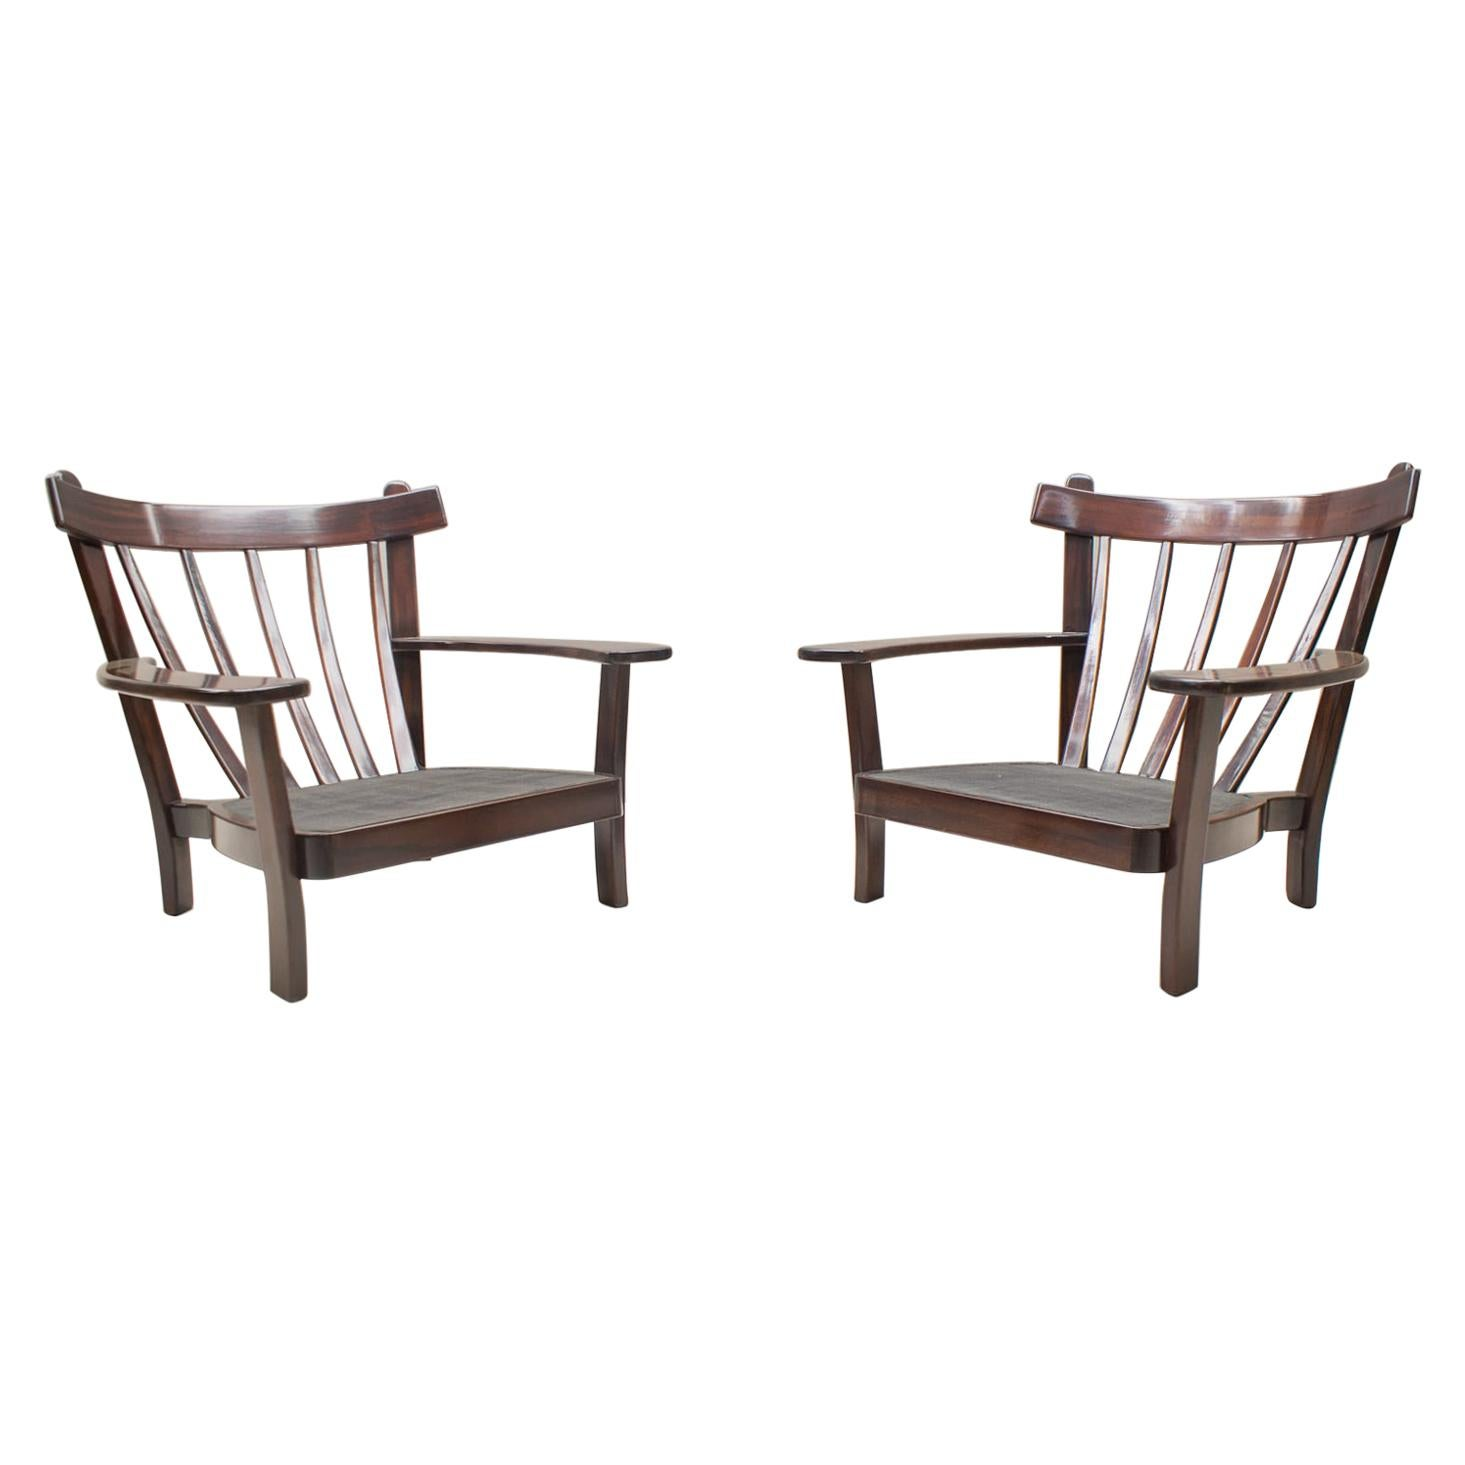 Two Large Brazilian Armchairs in the Manner of Sergio Rodrigues, 1960s